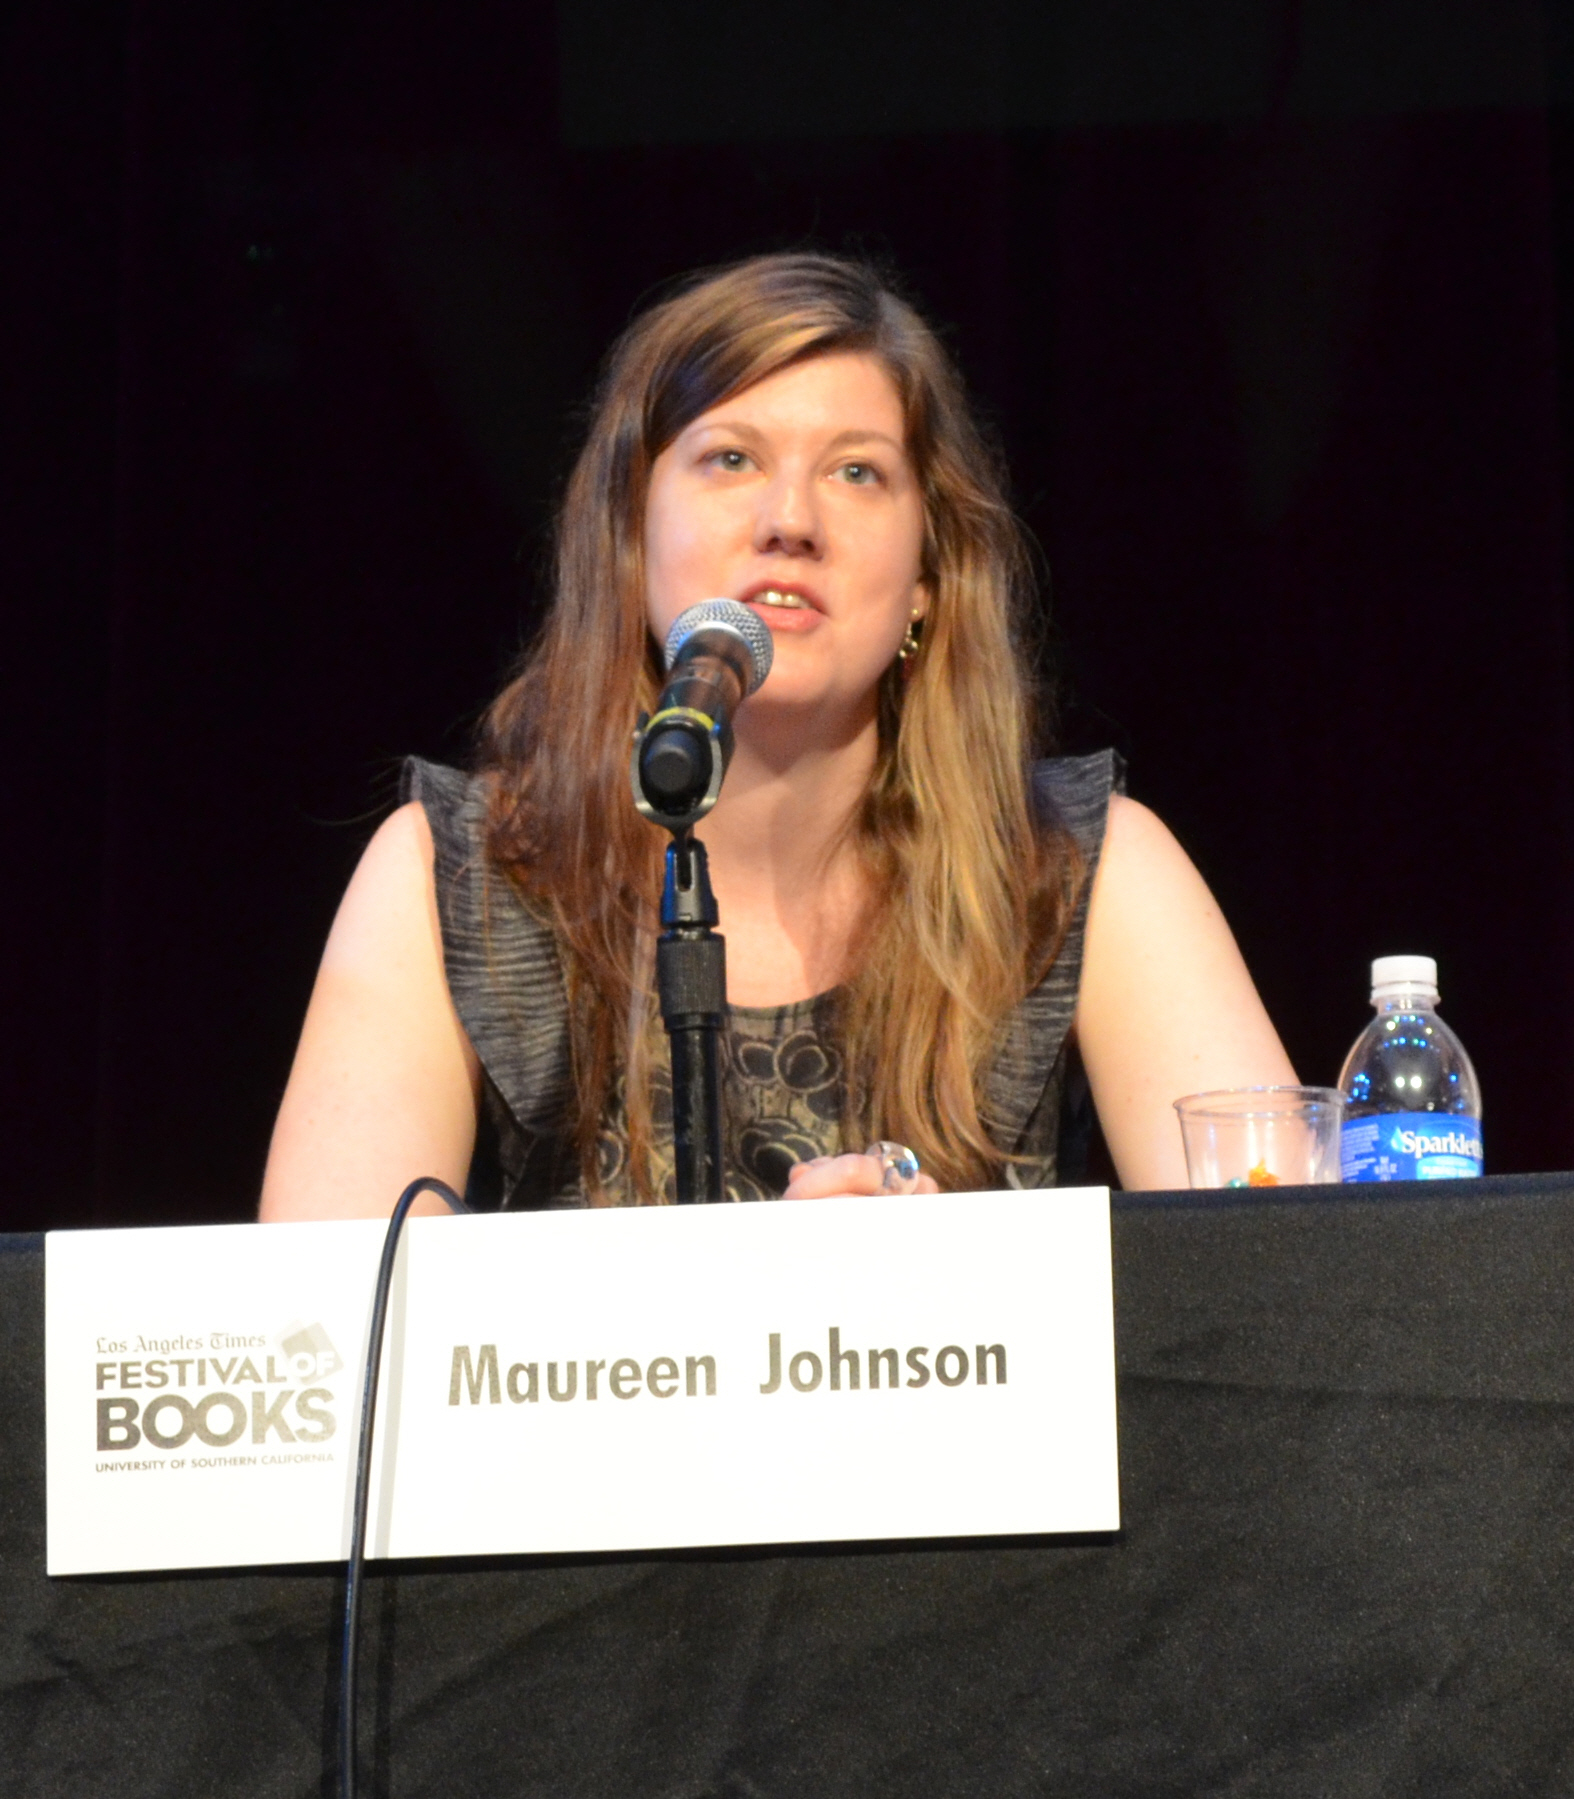 Maureen Johnson